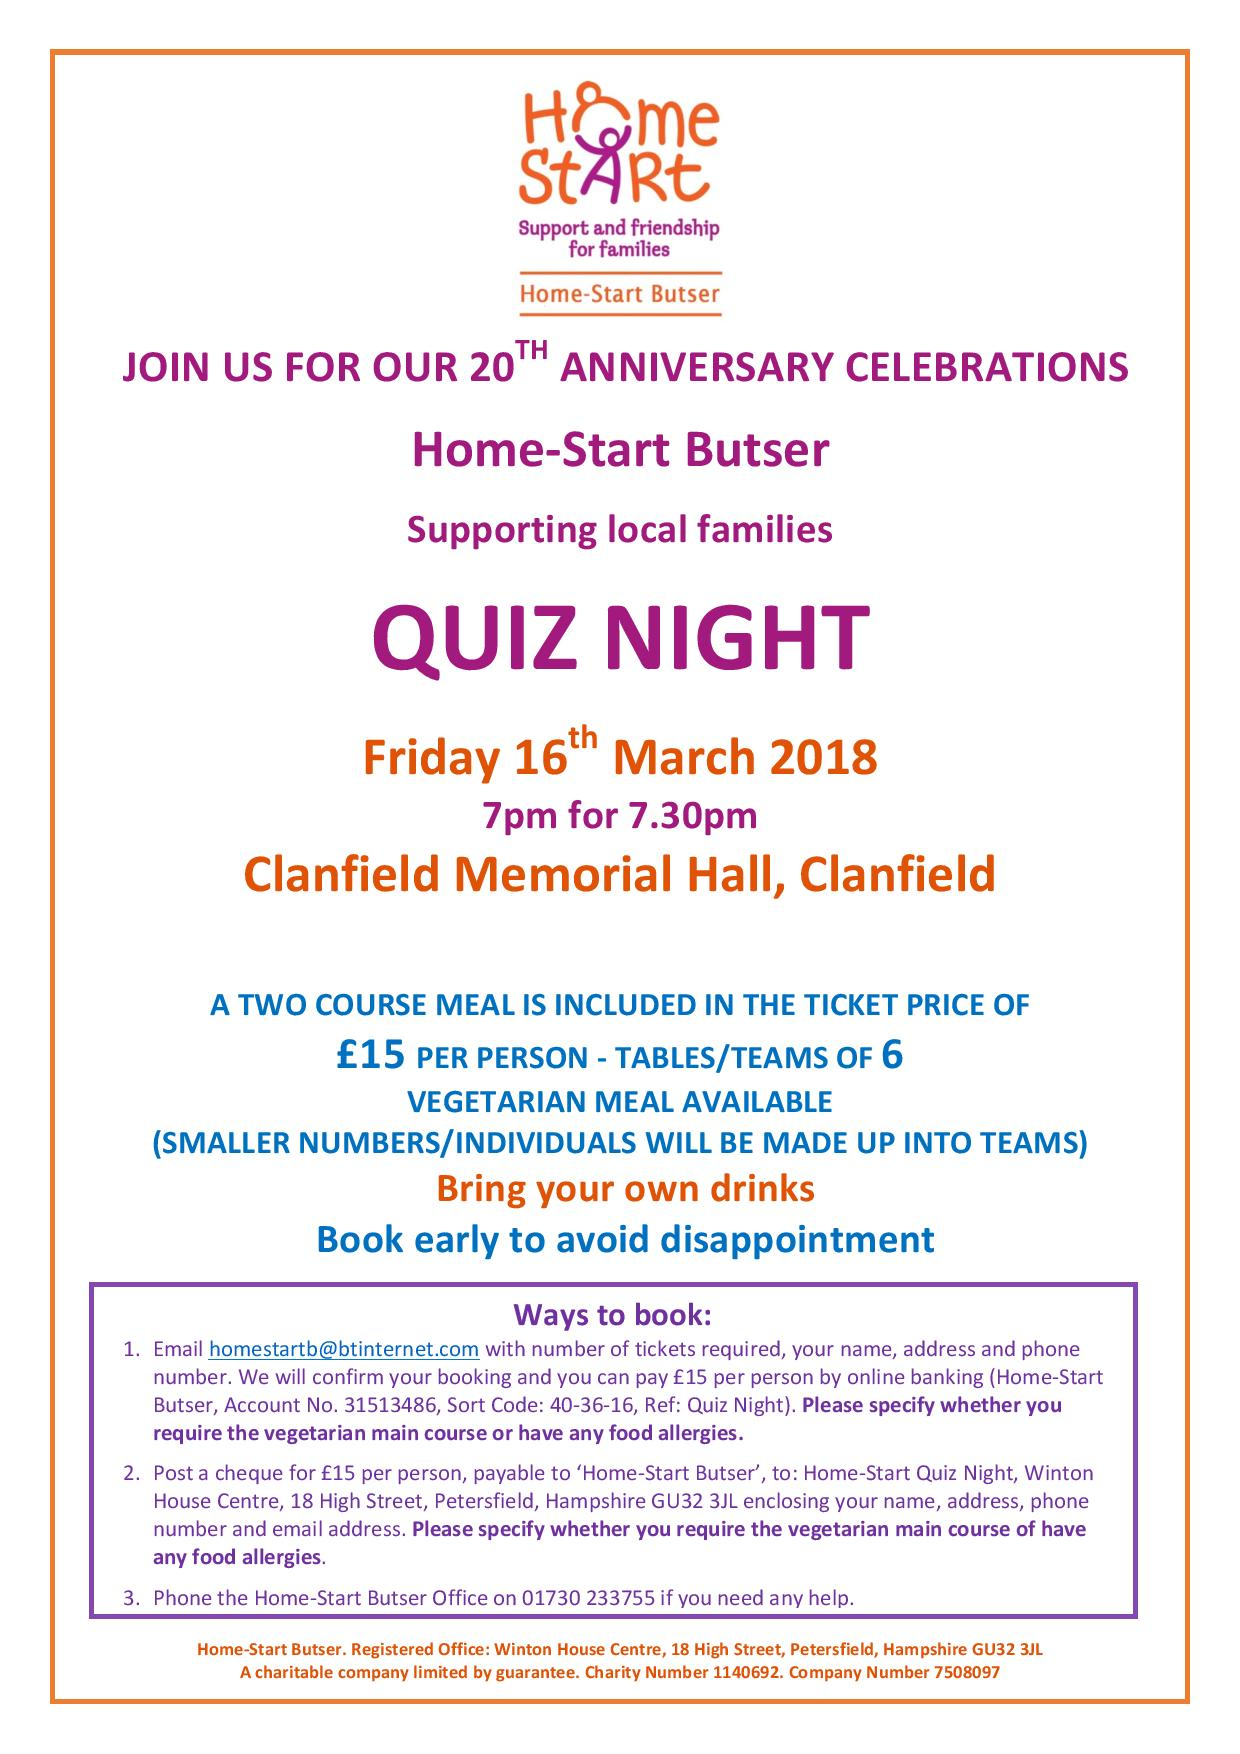 Home-Start Butser Quiz Night